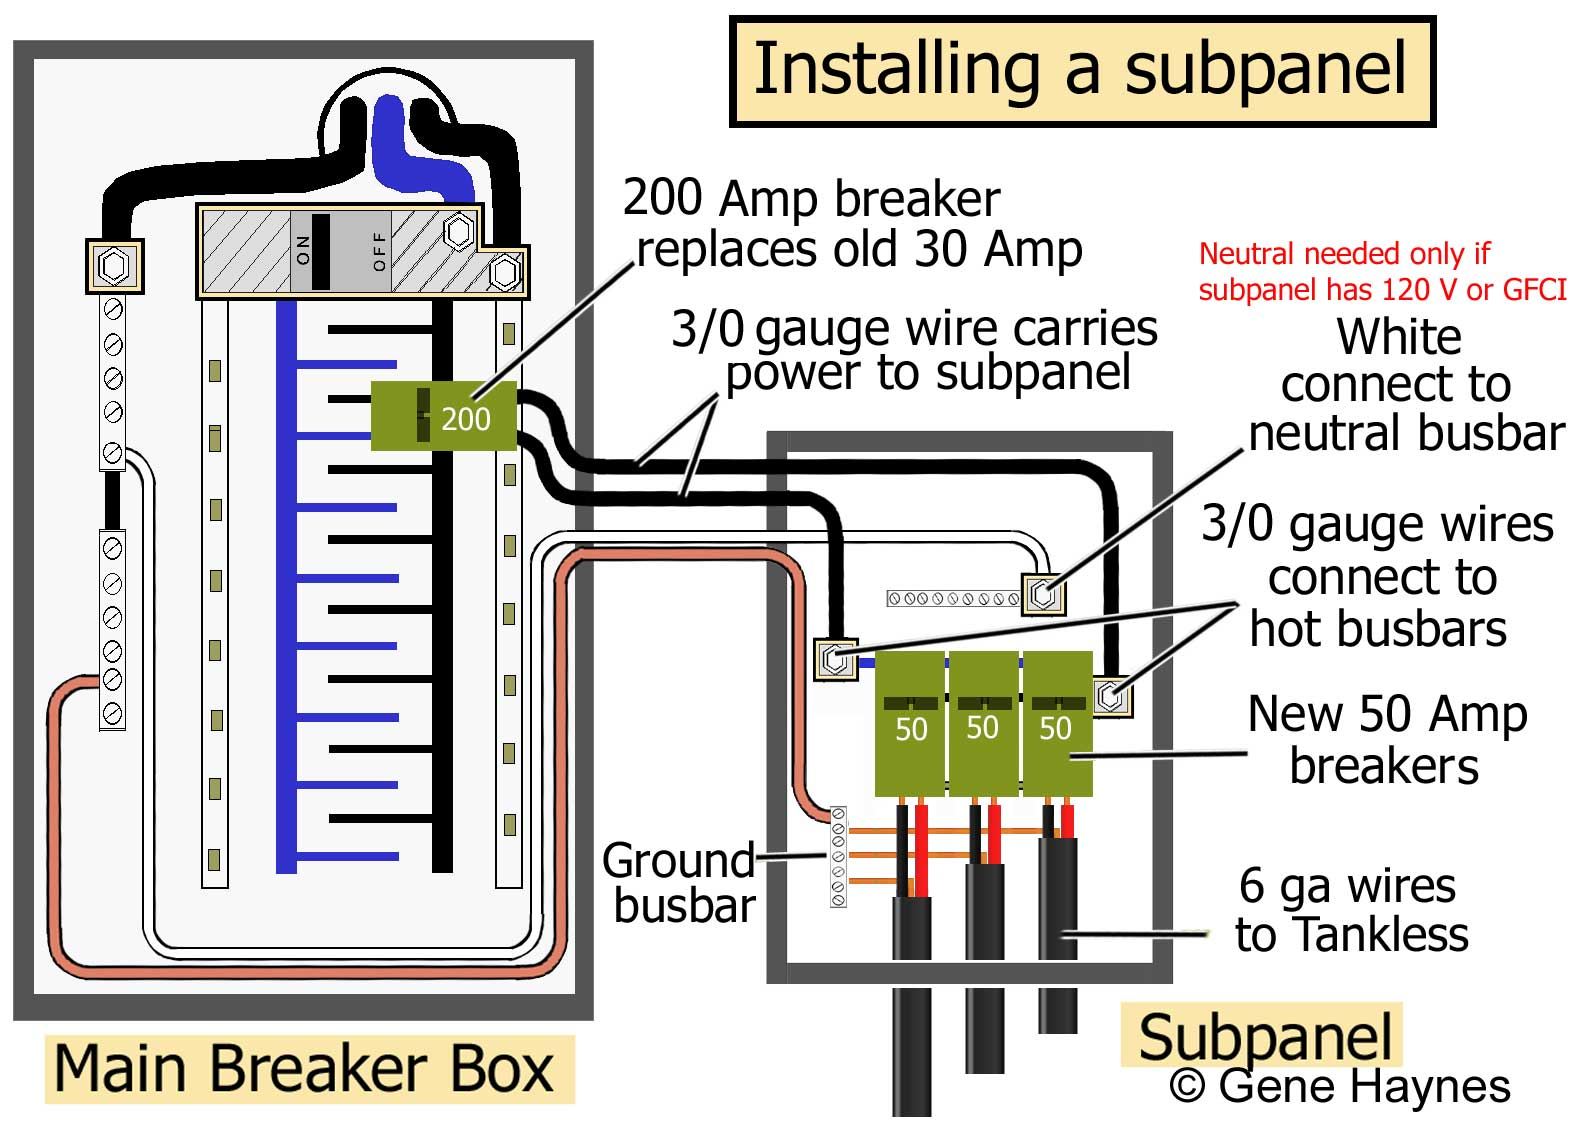 How to install a subpanel how to install main lug larger image 150 amp subpanel with 240volt and 120volt 150 amp breaker uses 20 wire neutral wire needed only if subpanel has 120volt breakers or gfci keyboard keysfo Image collections